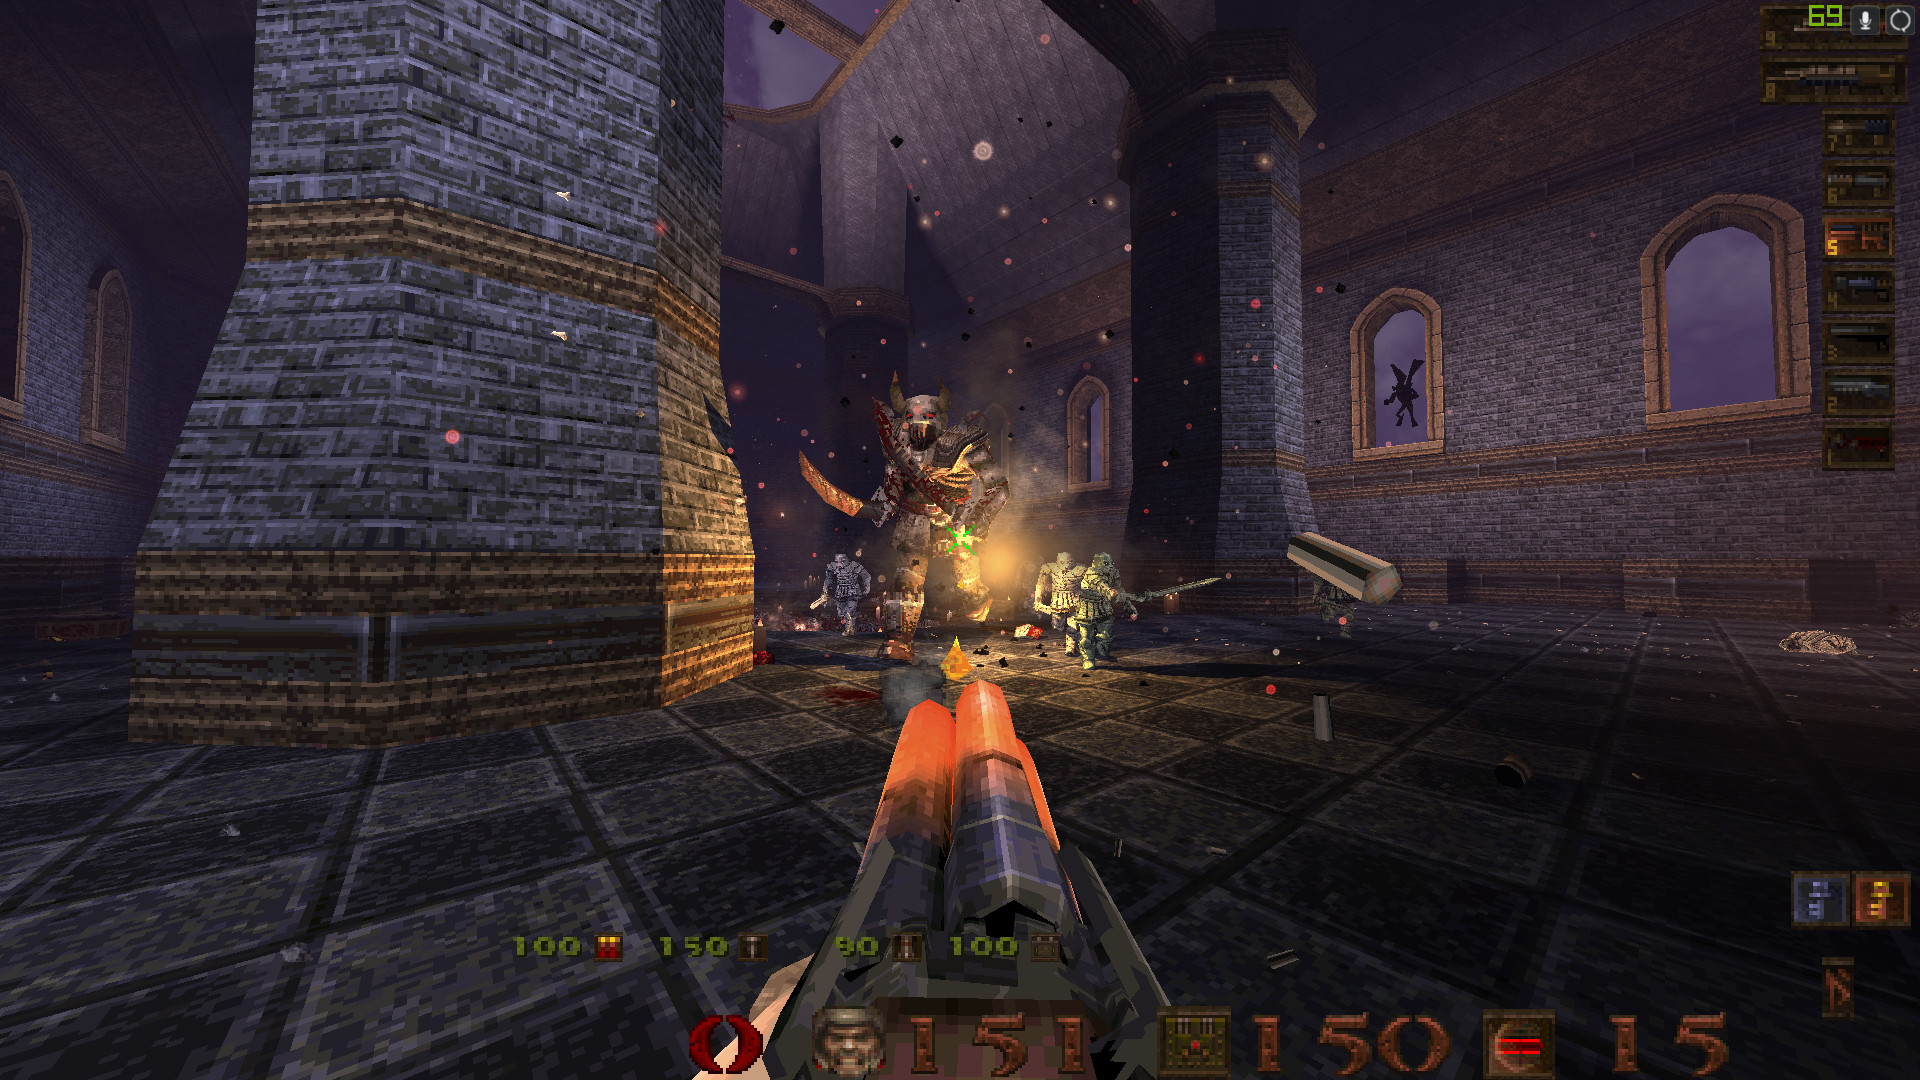 This Week In Mods: January 27 2019 feature - Quake 1 5 mod